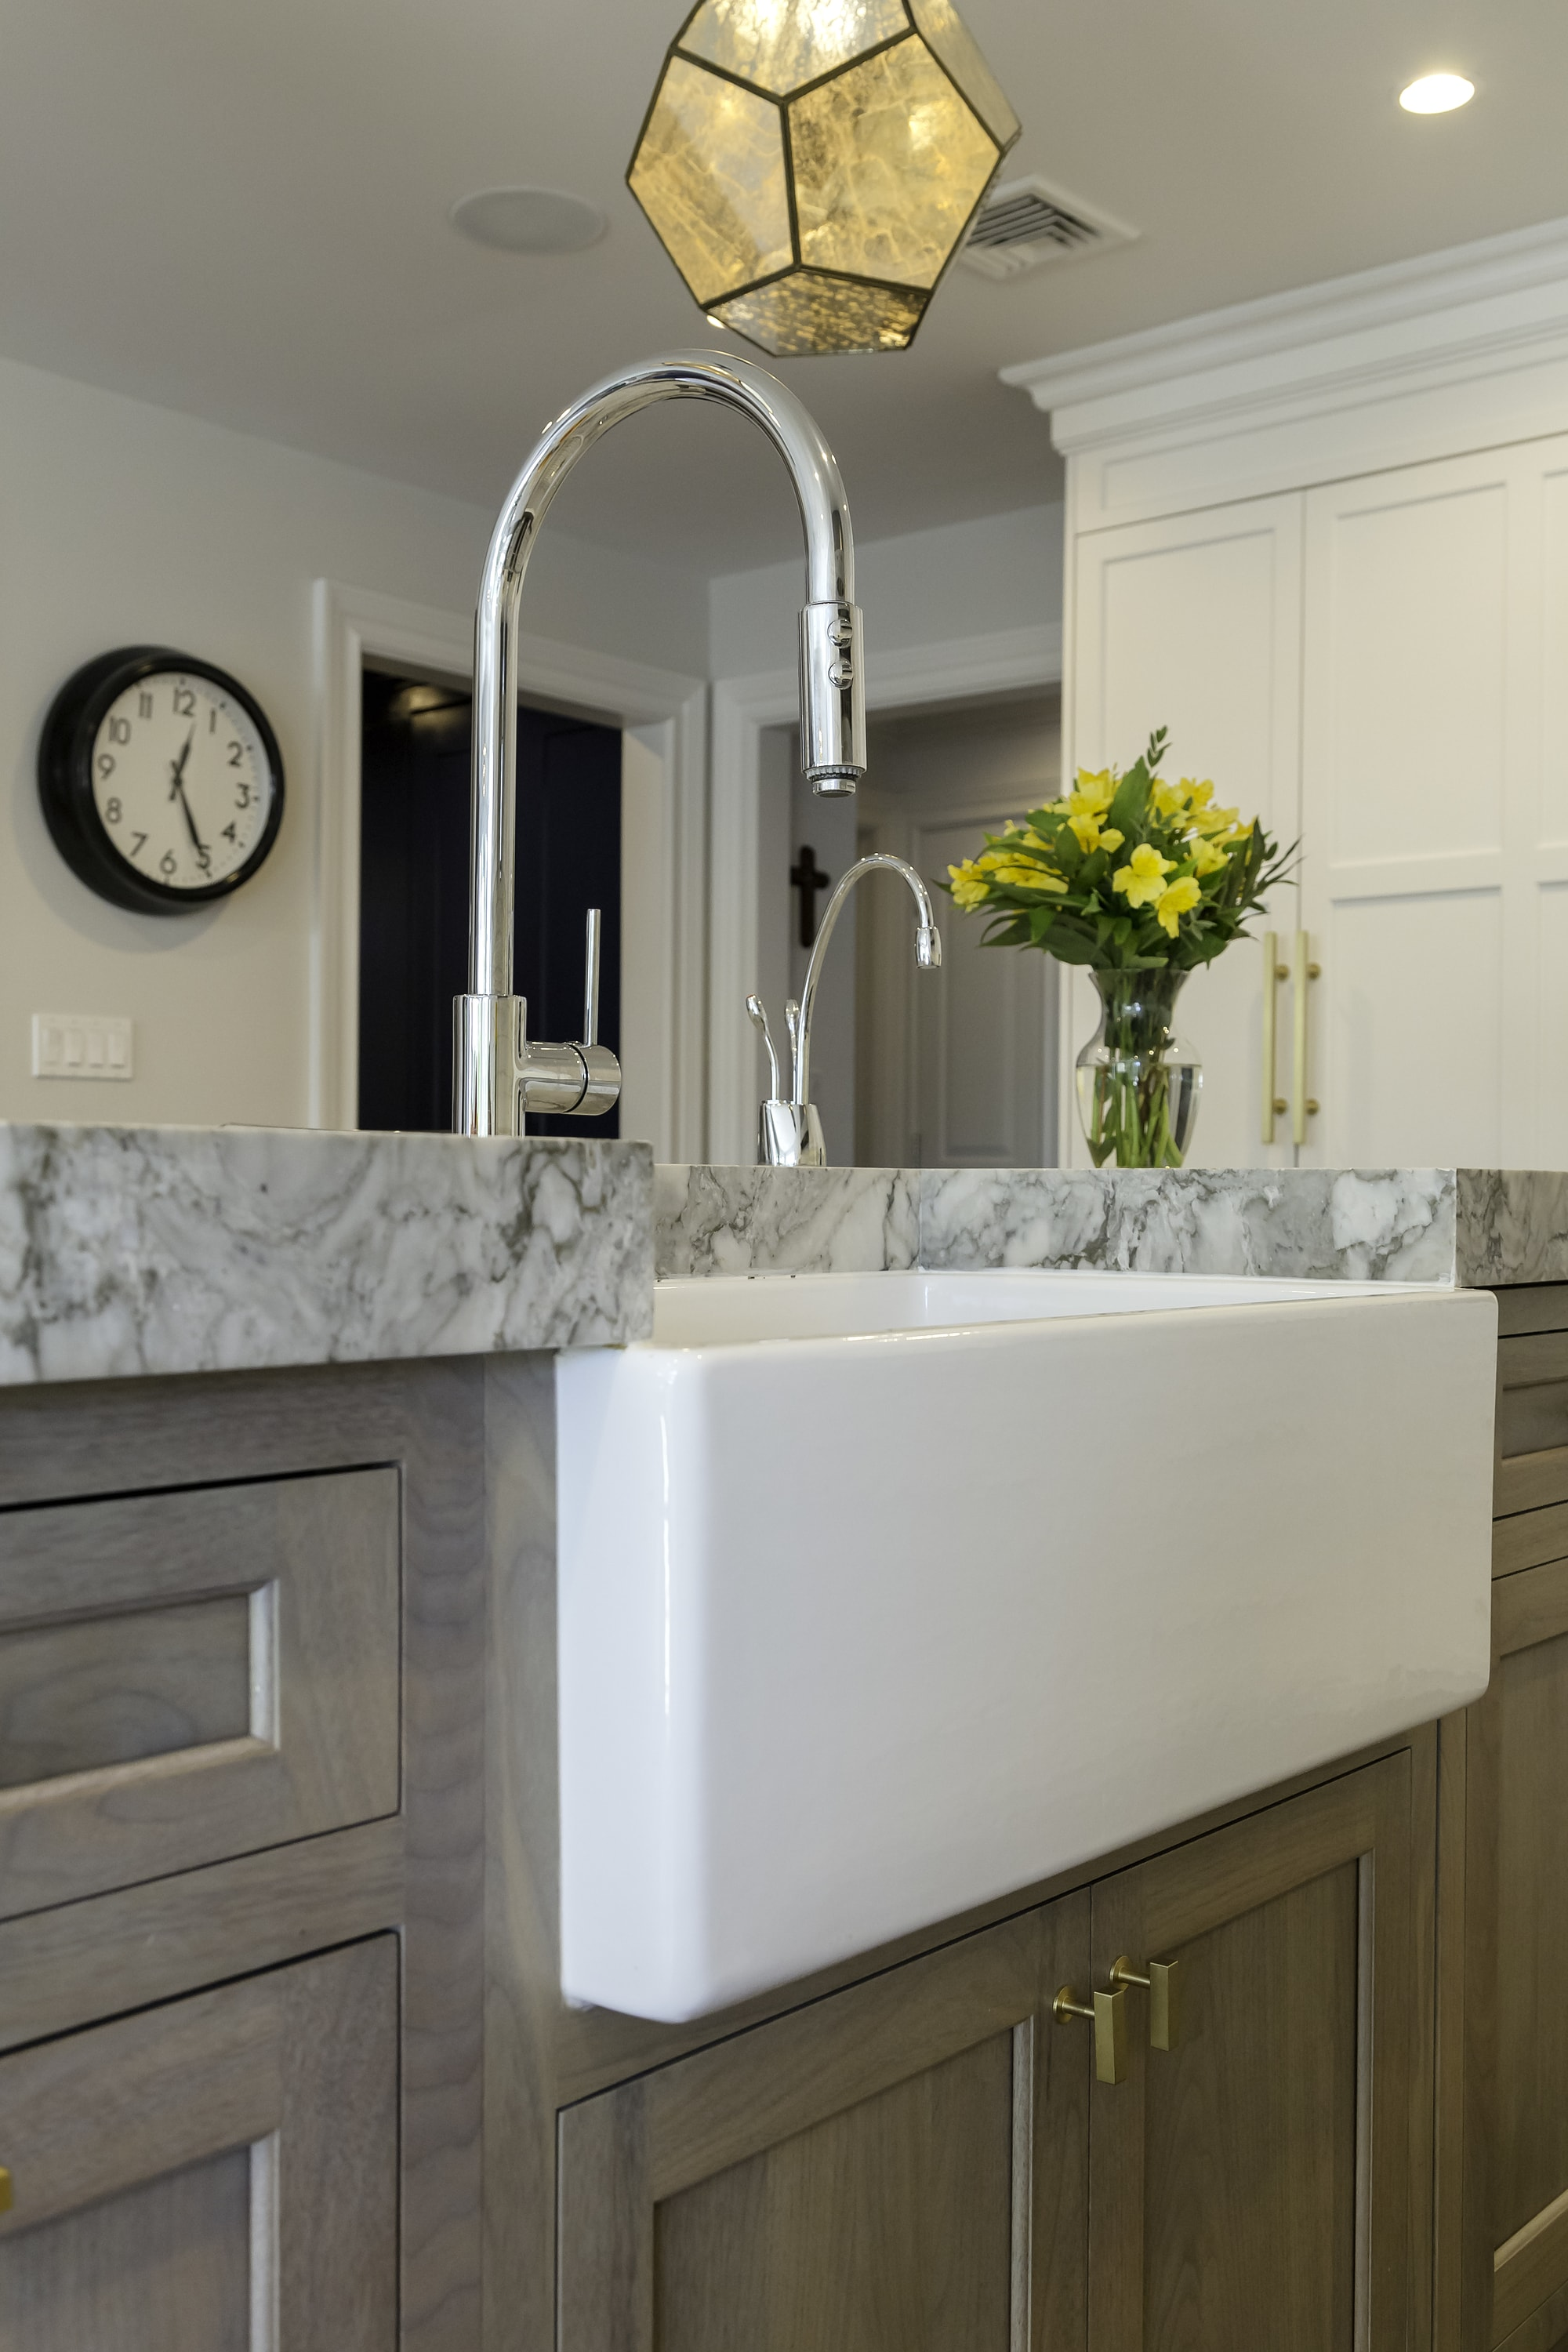 Transitional style kitchen with single hand faucet